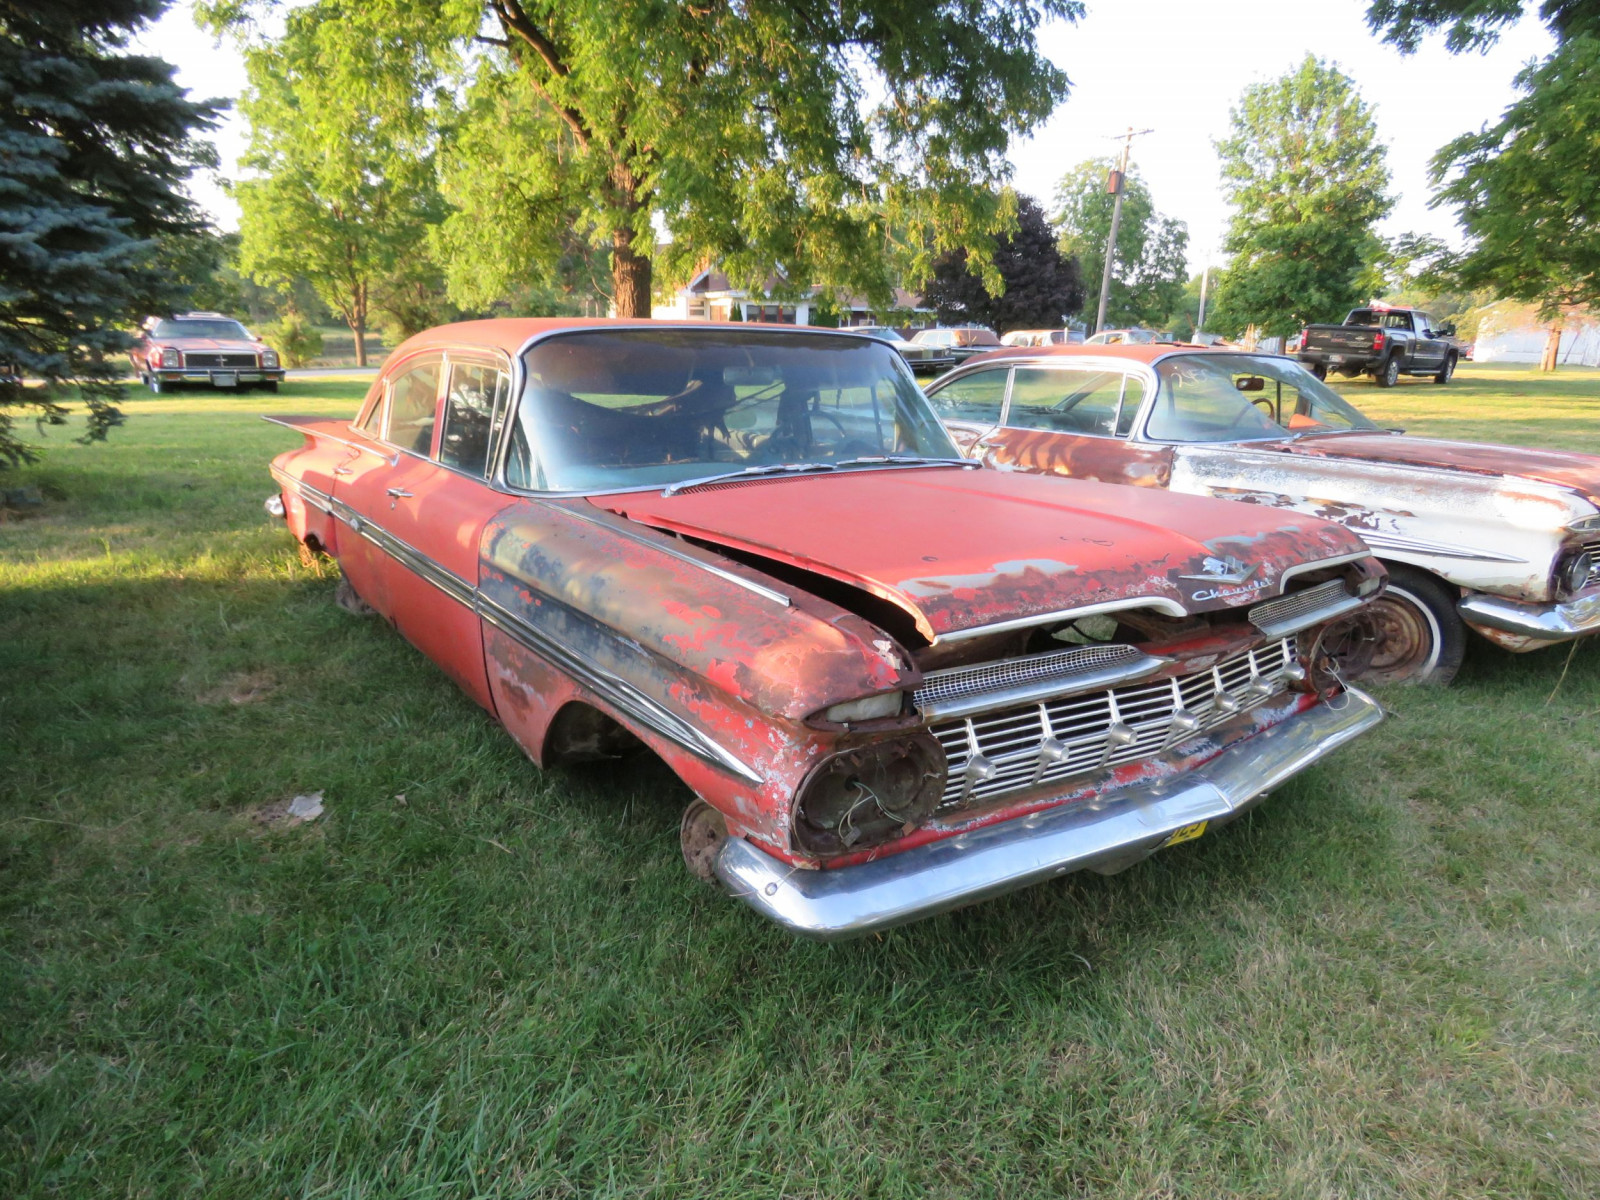 1959 Chevrolet 4dr Sedan for parts or project - Image 3